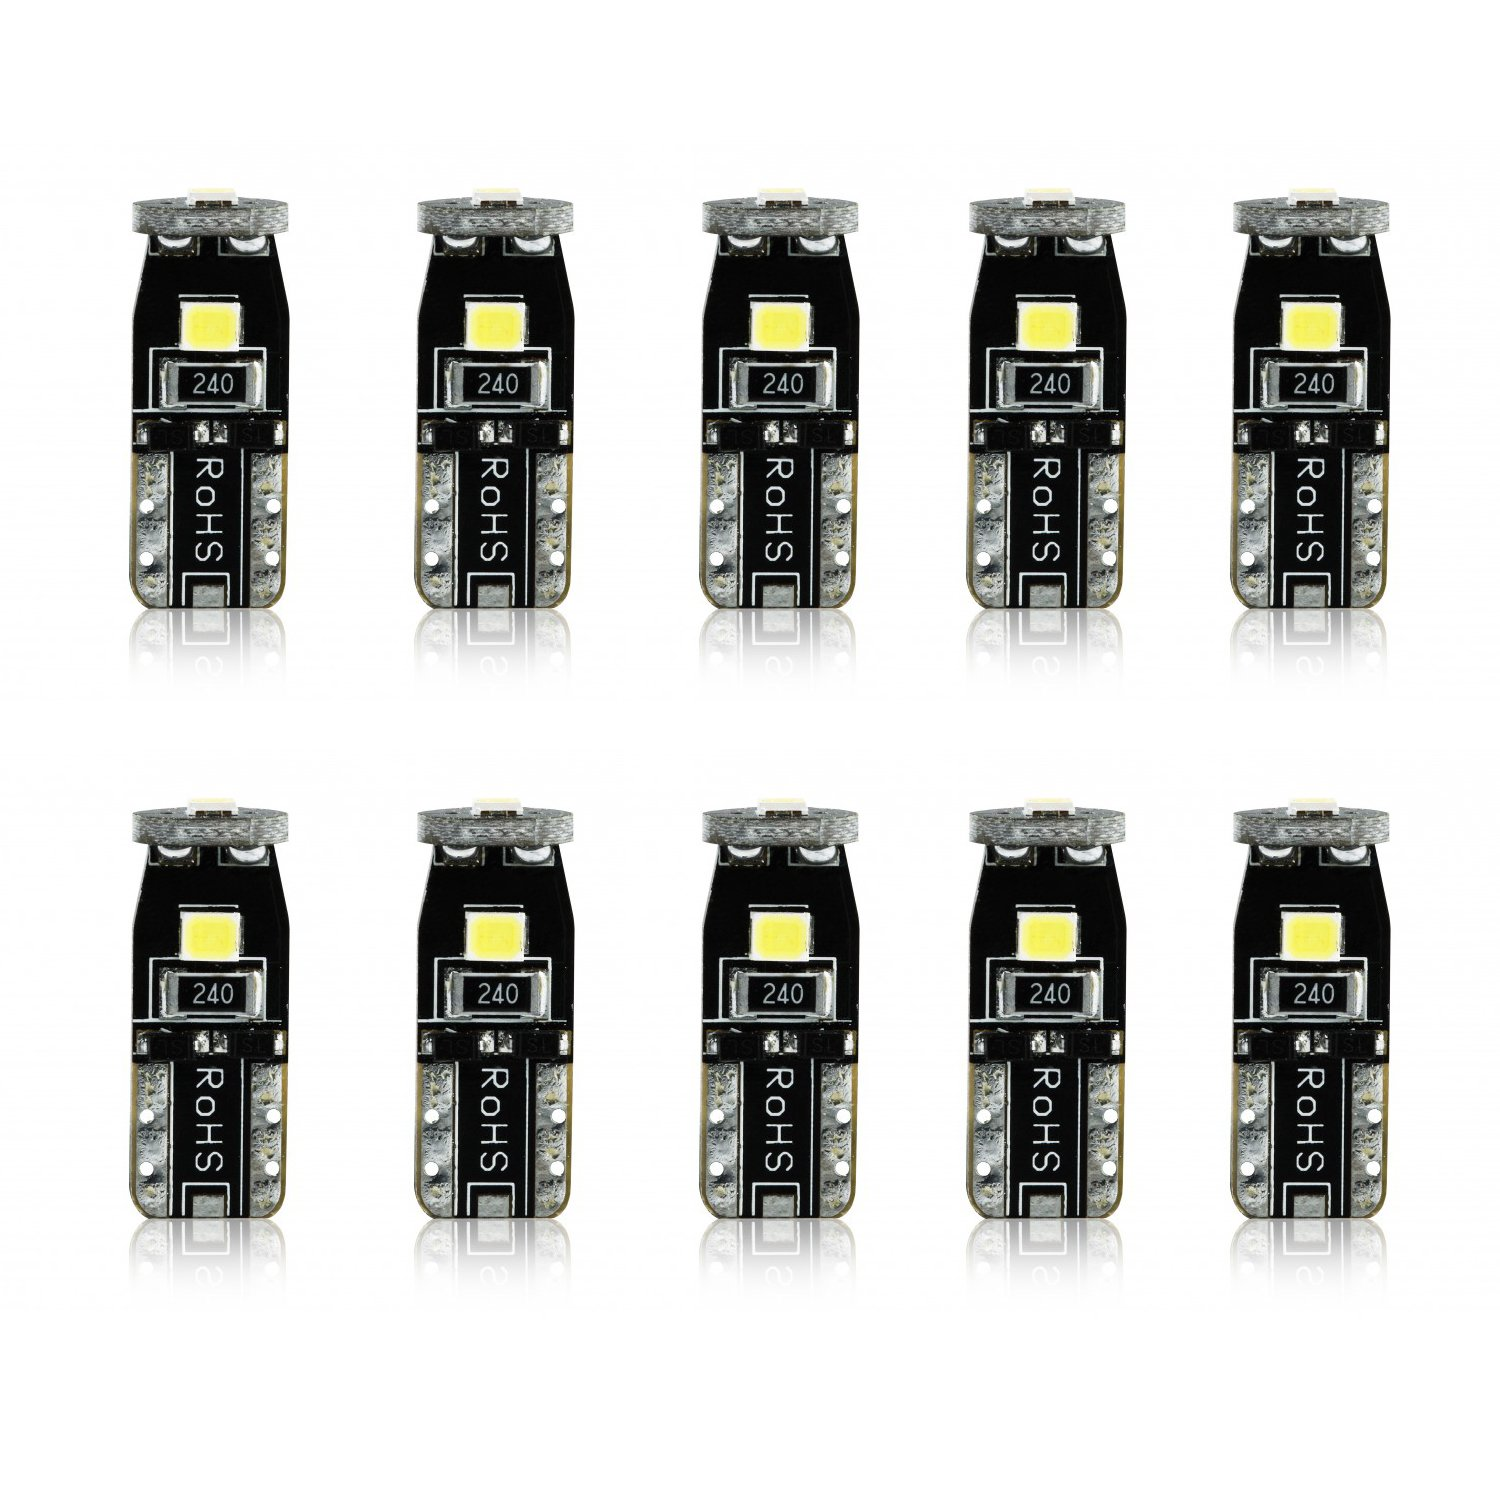 JDM ASTAR 10pcs Super Bright 194 168 175 2825 T10 PX Chipsets LED Bulbs,Xenon White (Best Value on the market)